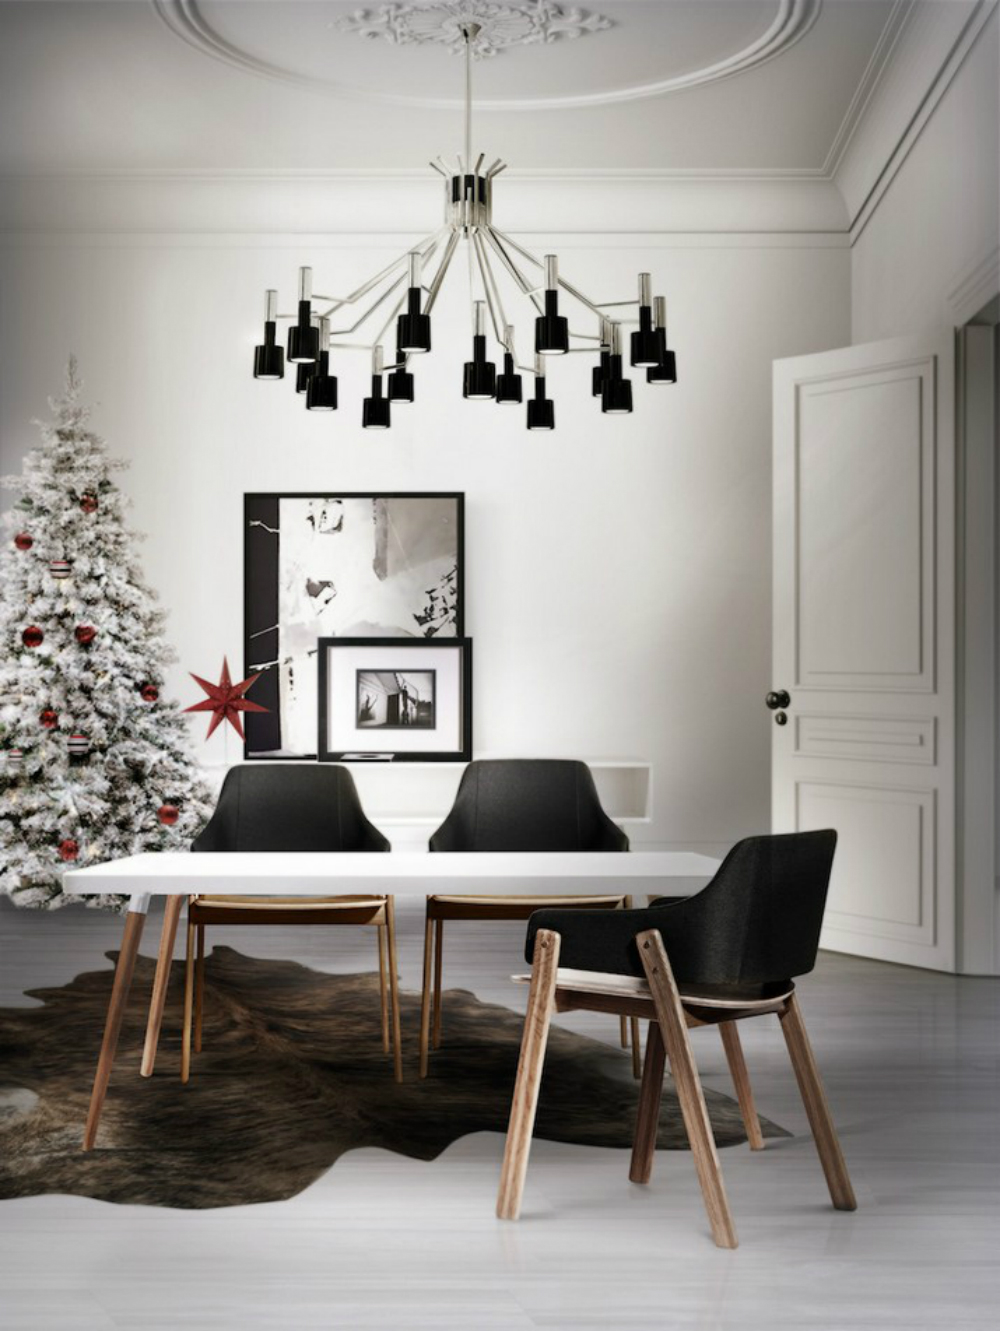 Luxury News: Celebrity Homes Stunning Christmas Decorations christmas decorations Luxury News: Celebrity Homes Stunning Christmas Decorations Luxury News Celebrity Homes Stunning Christmas Decorations 1